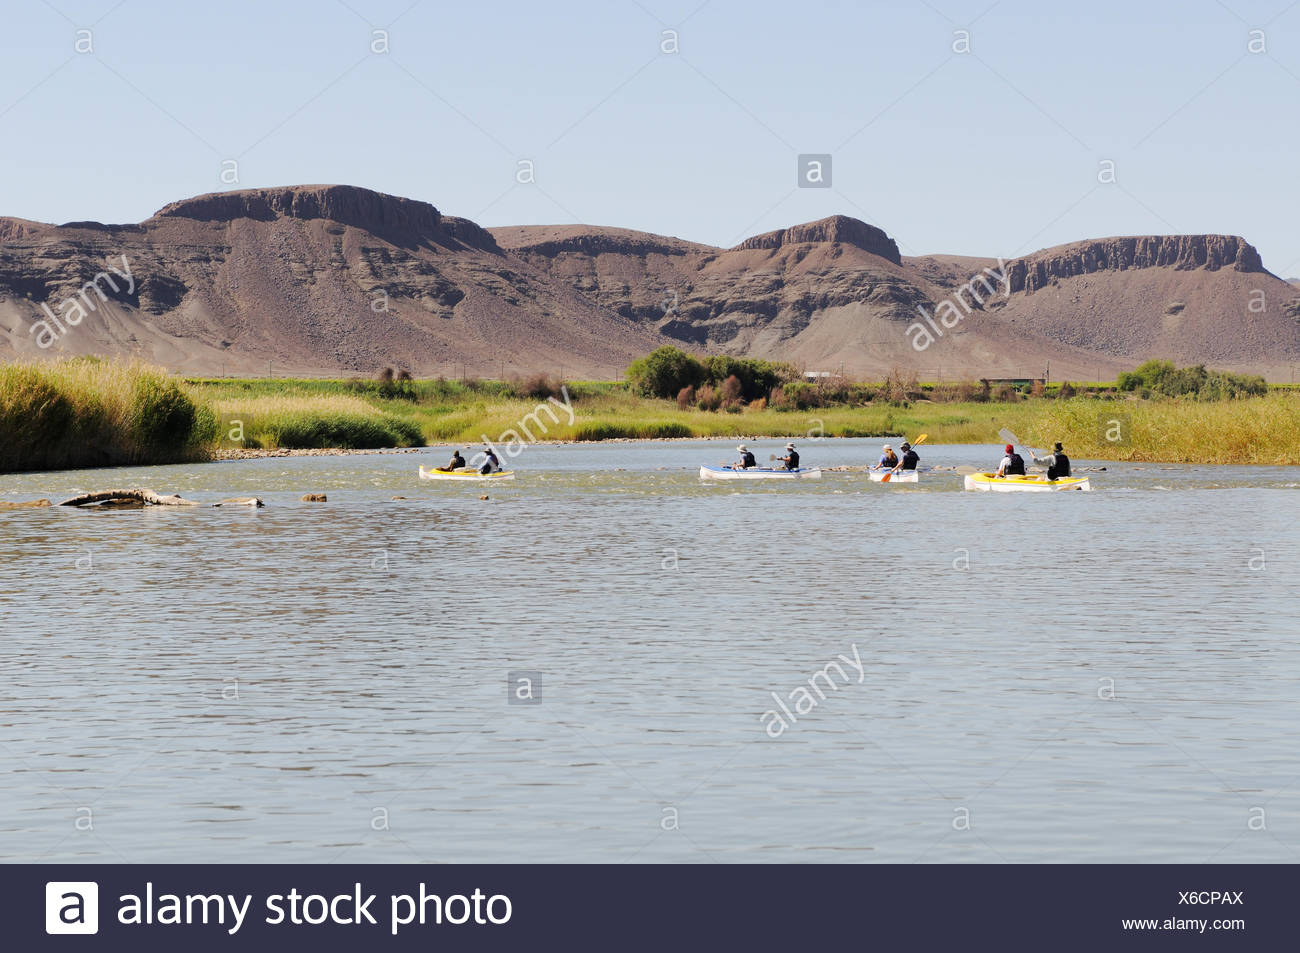 Canoe trip on the Oranje, Orange River, border river between Namibia and South Africa - Stock Image